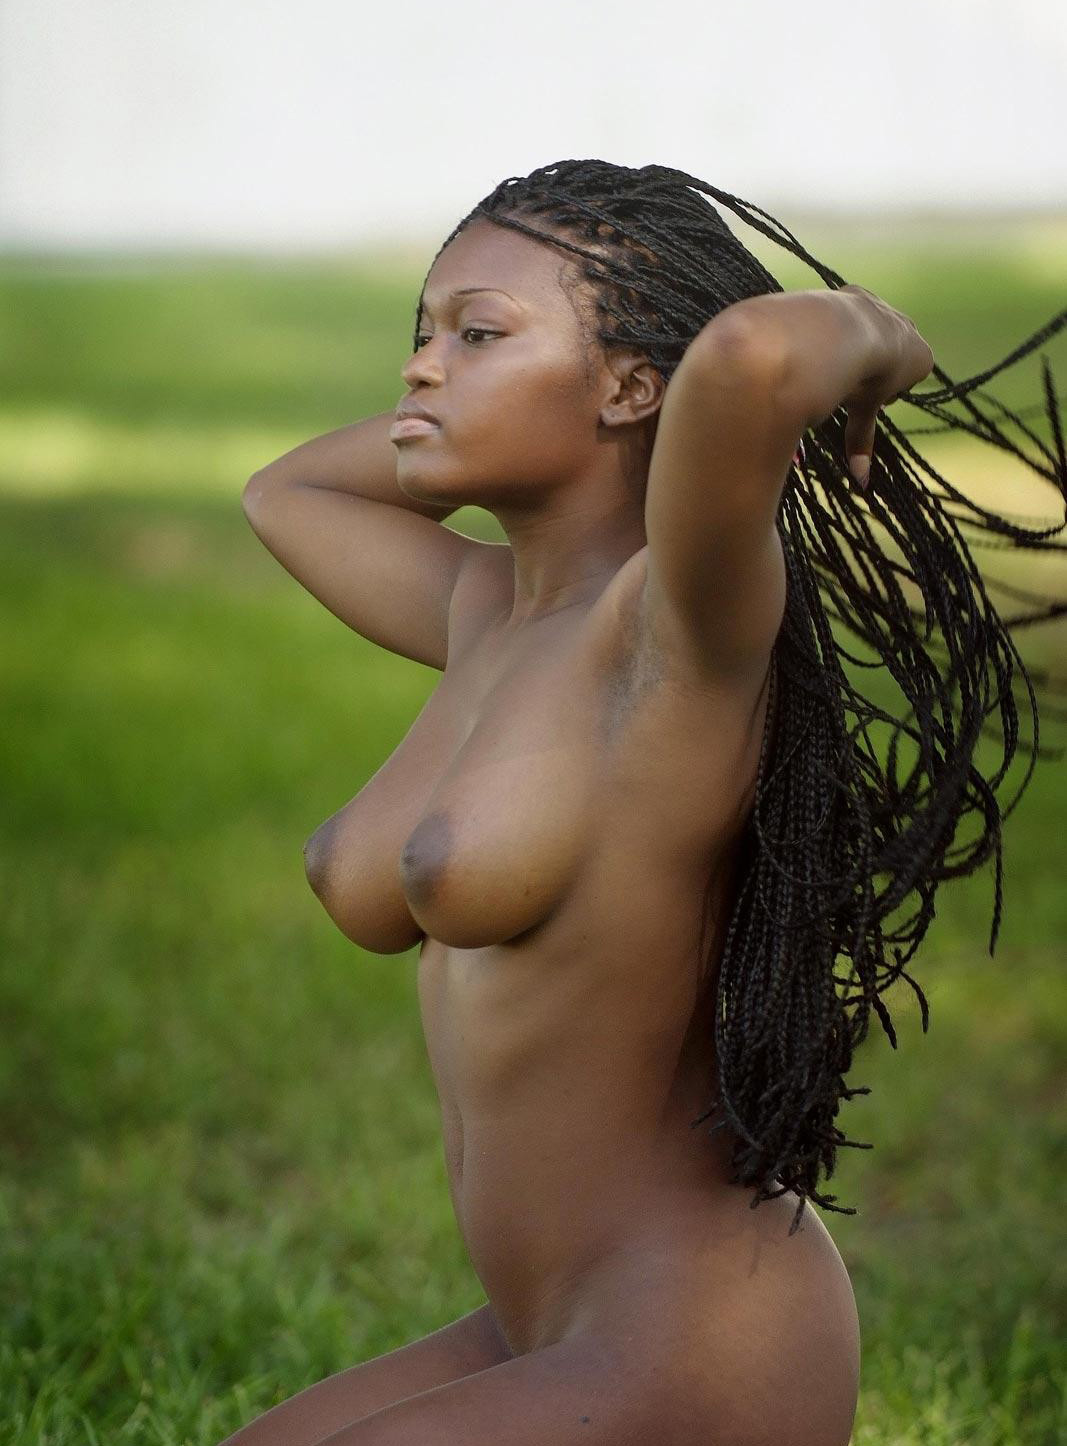 Nude pictures of black men